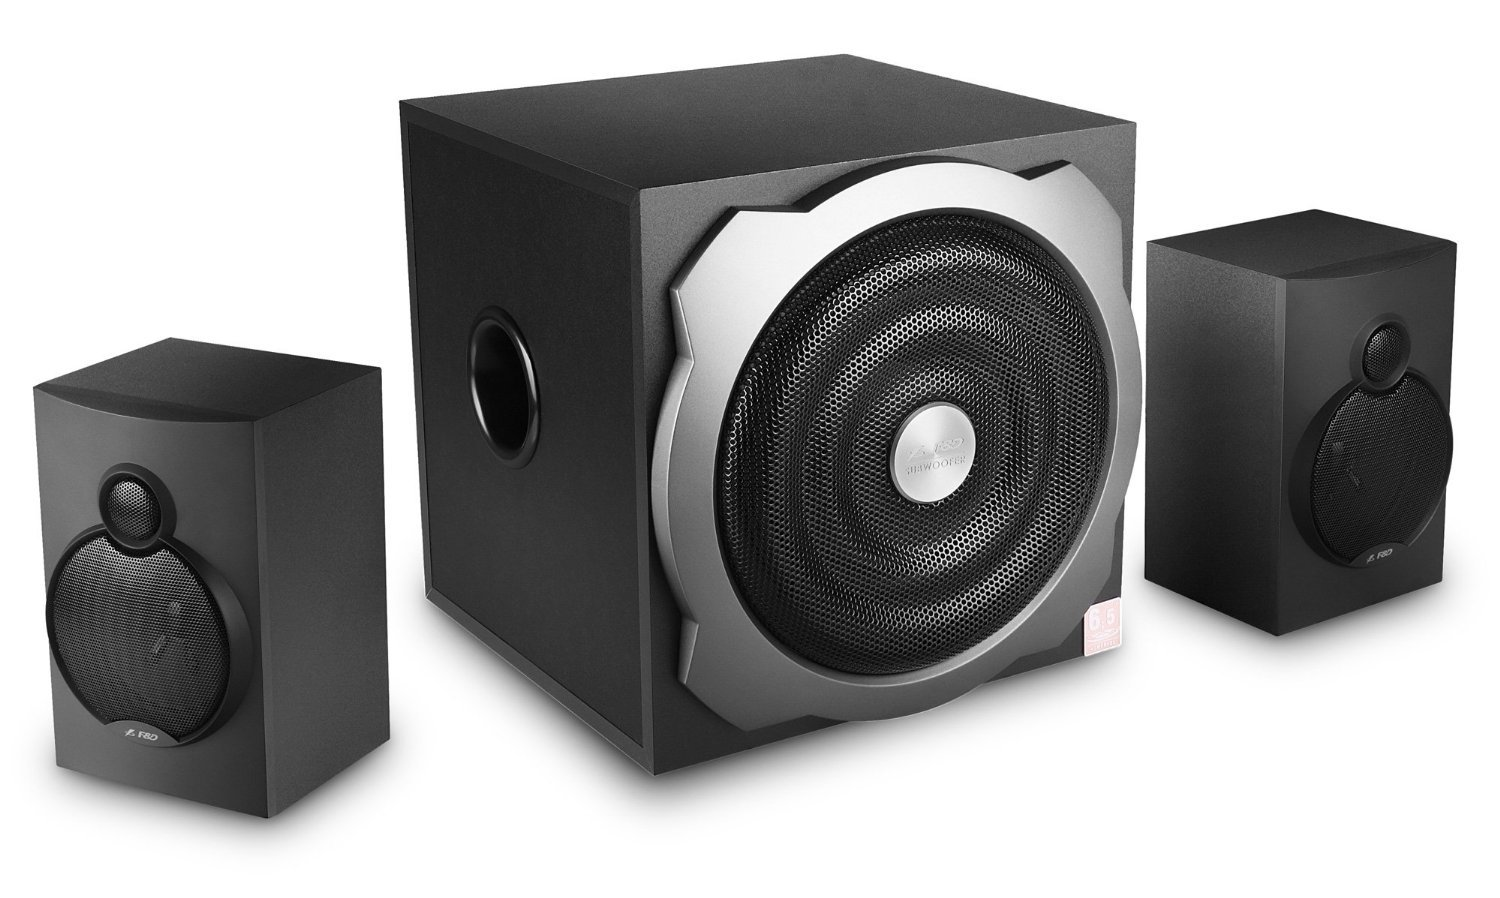 Price available in white or black for about 2399 for all four - F D A521 2 1 Channel Speaker Price Buy F D A521 2 1 Channel Speaker Online In India Amazon In